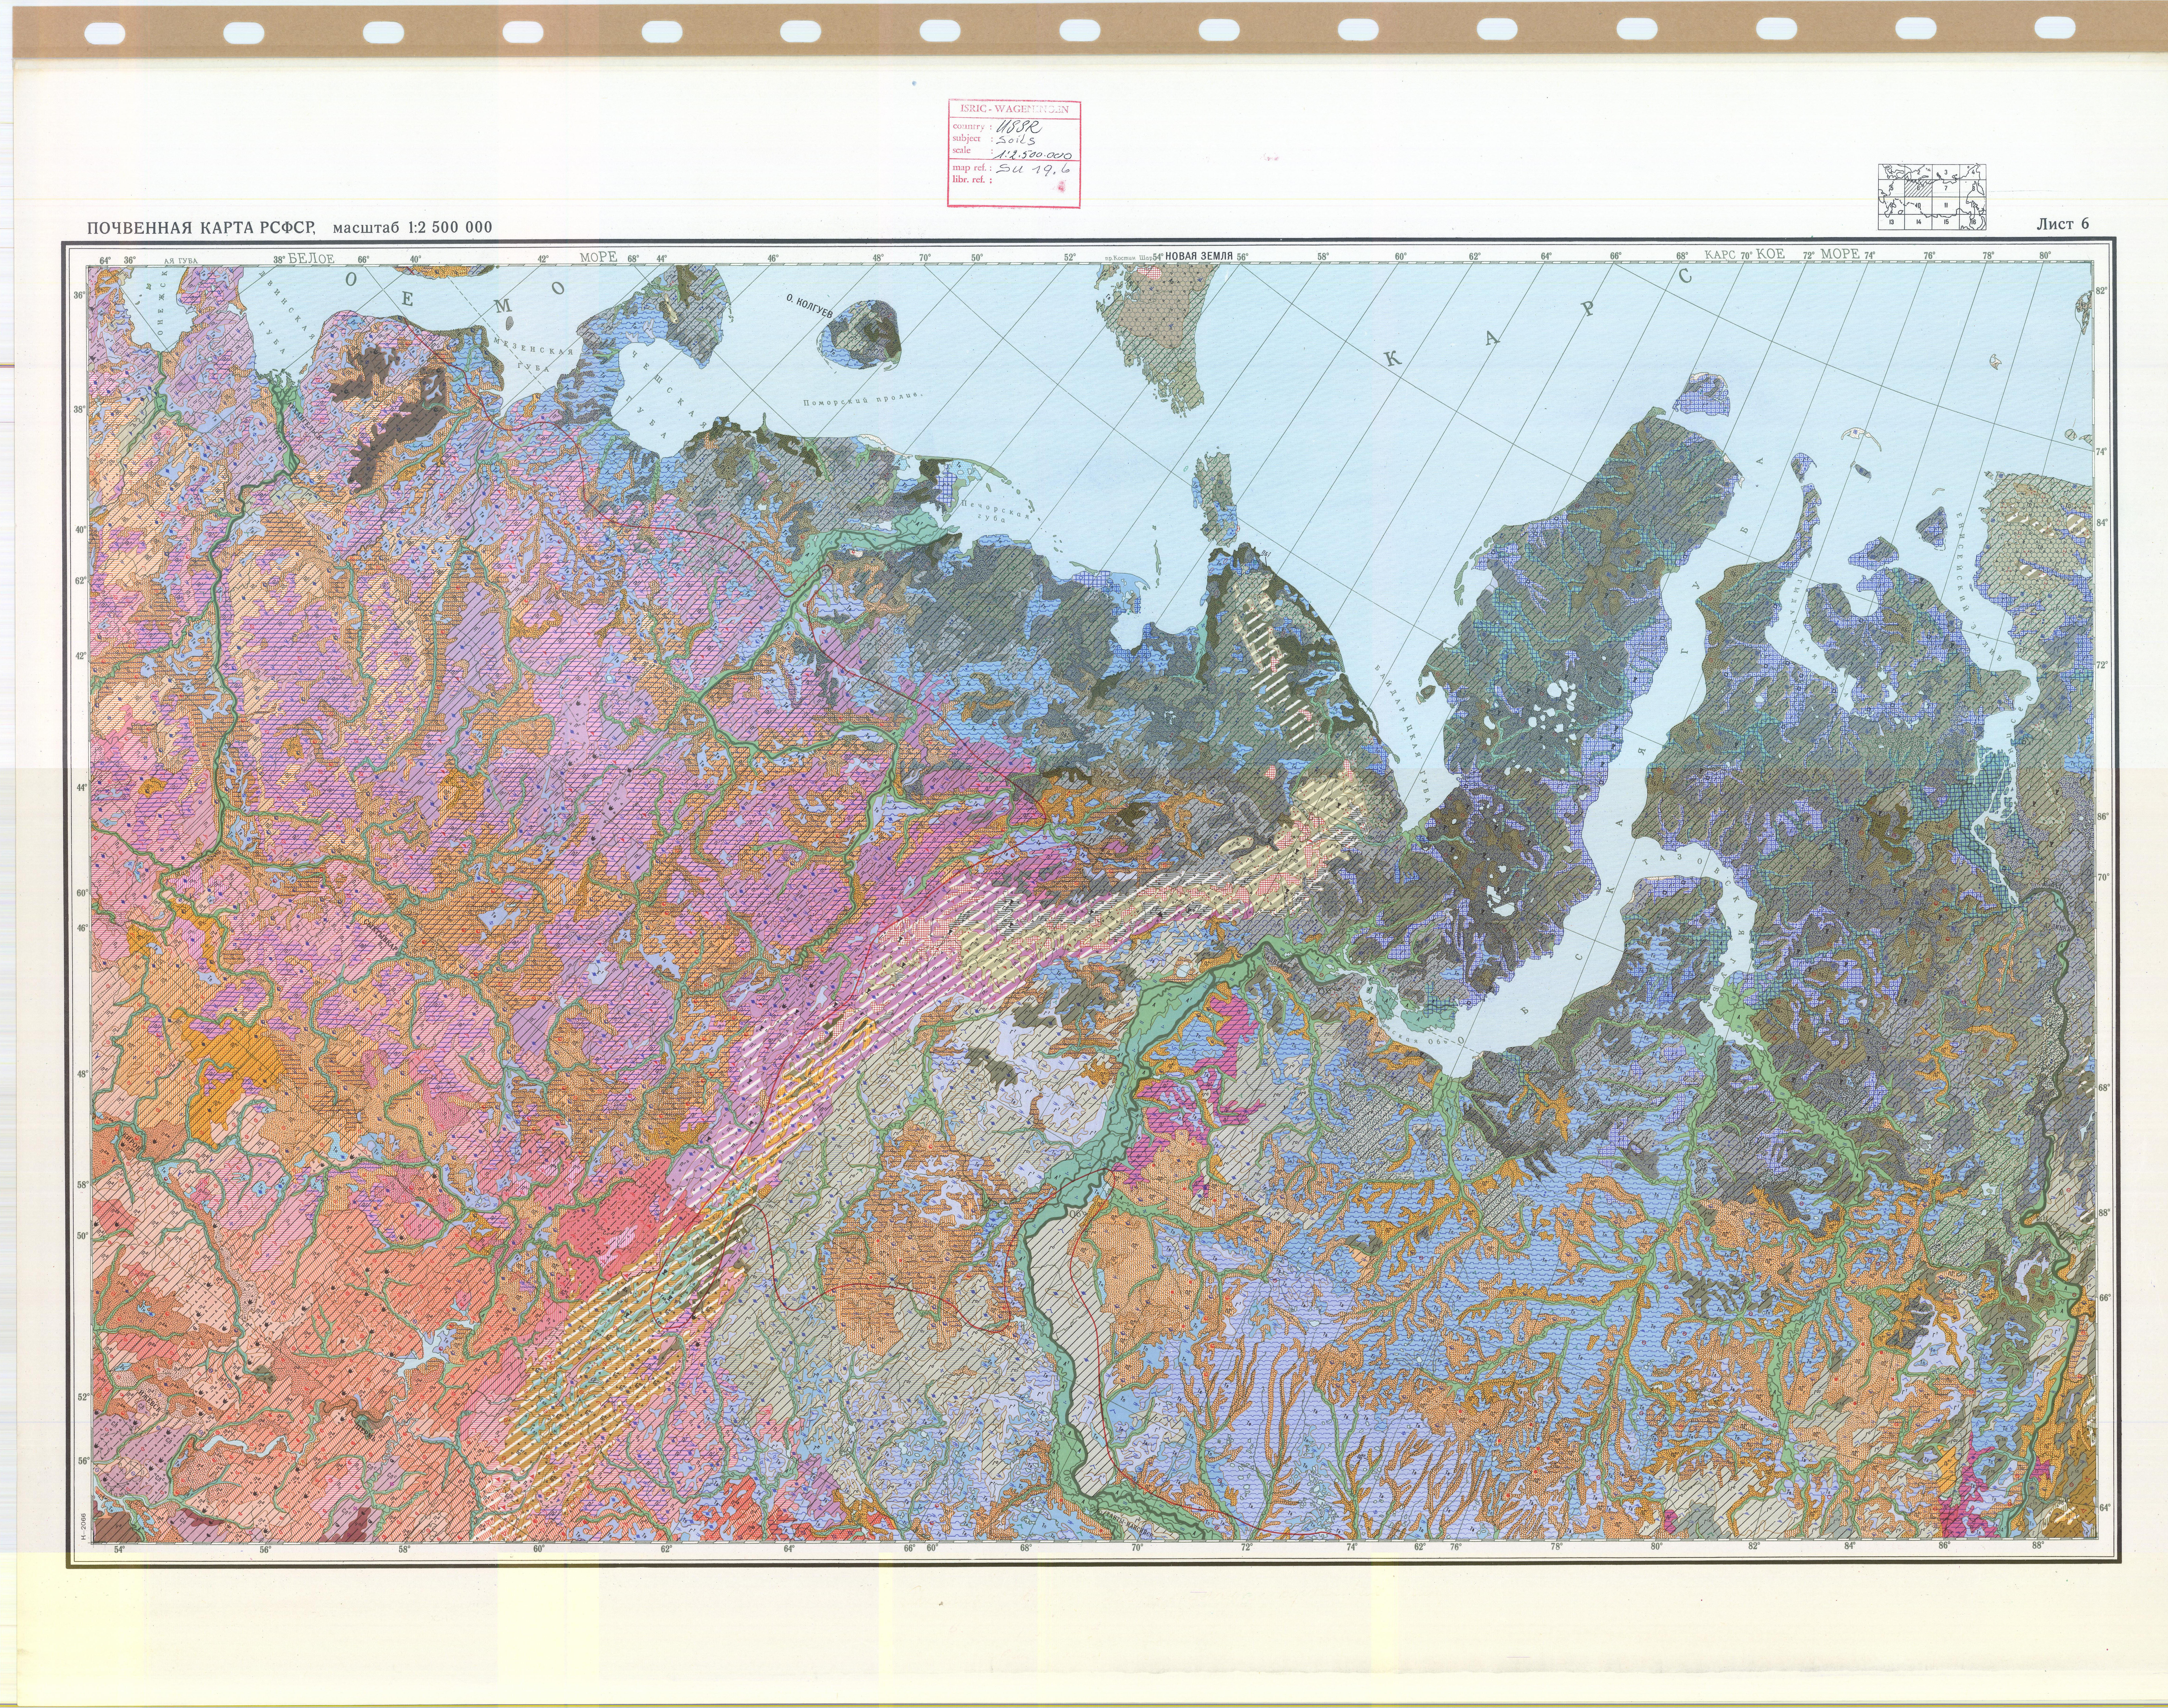 Map Of Russia In Russian.Title In Russian Soil Map Of The Russian Federation Rsfsr Sheet